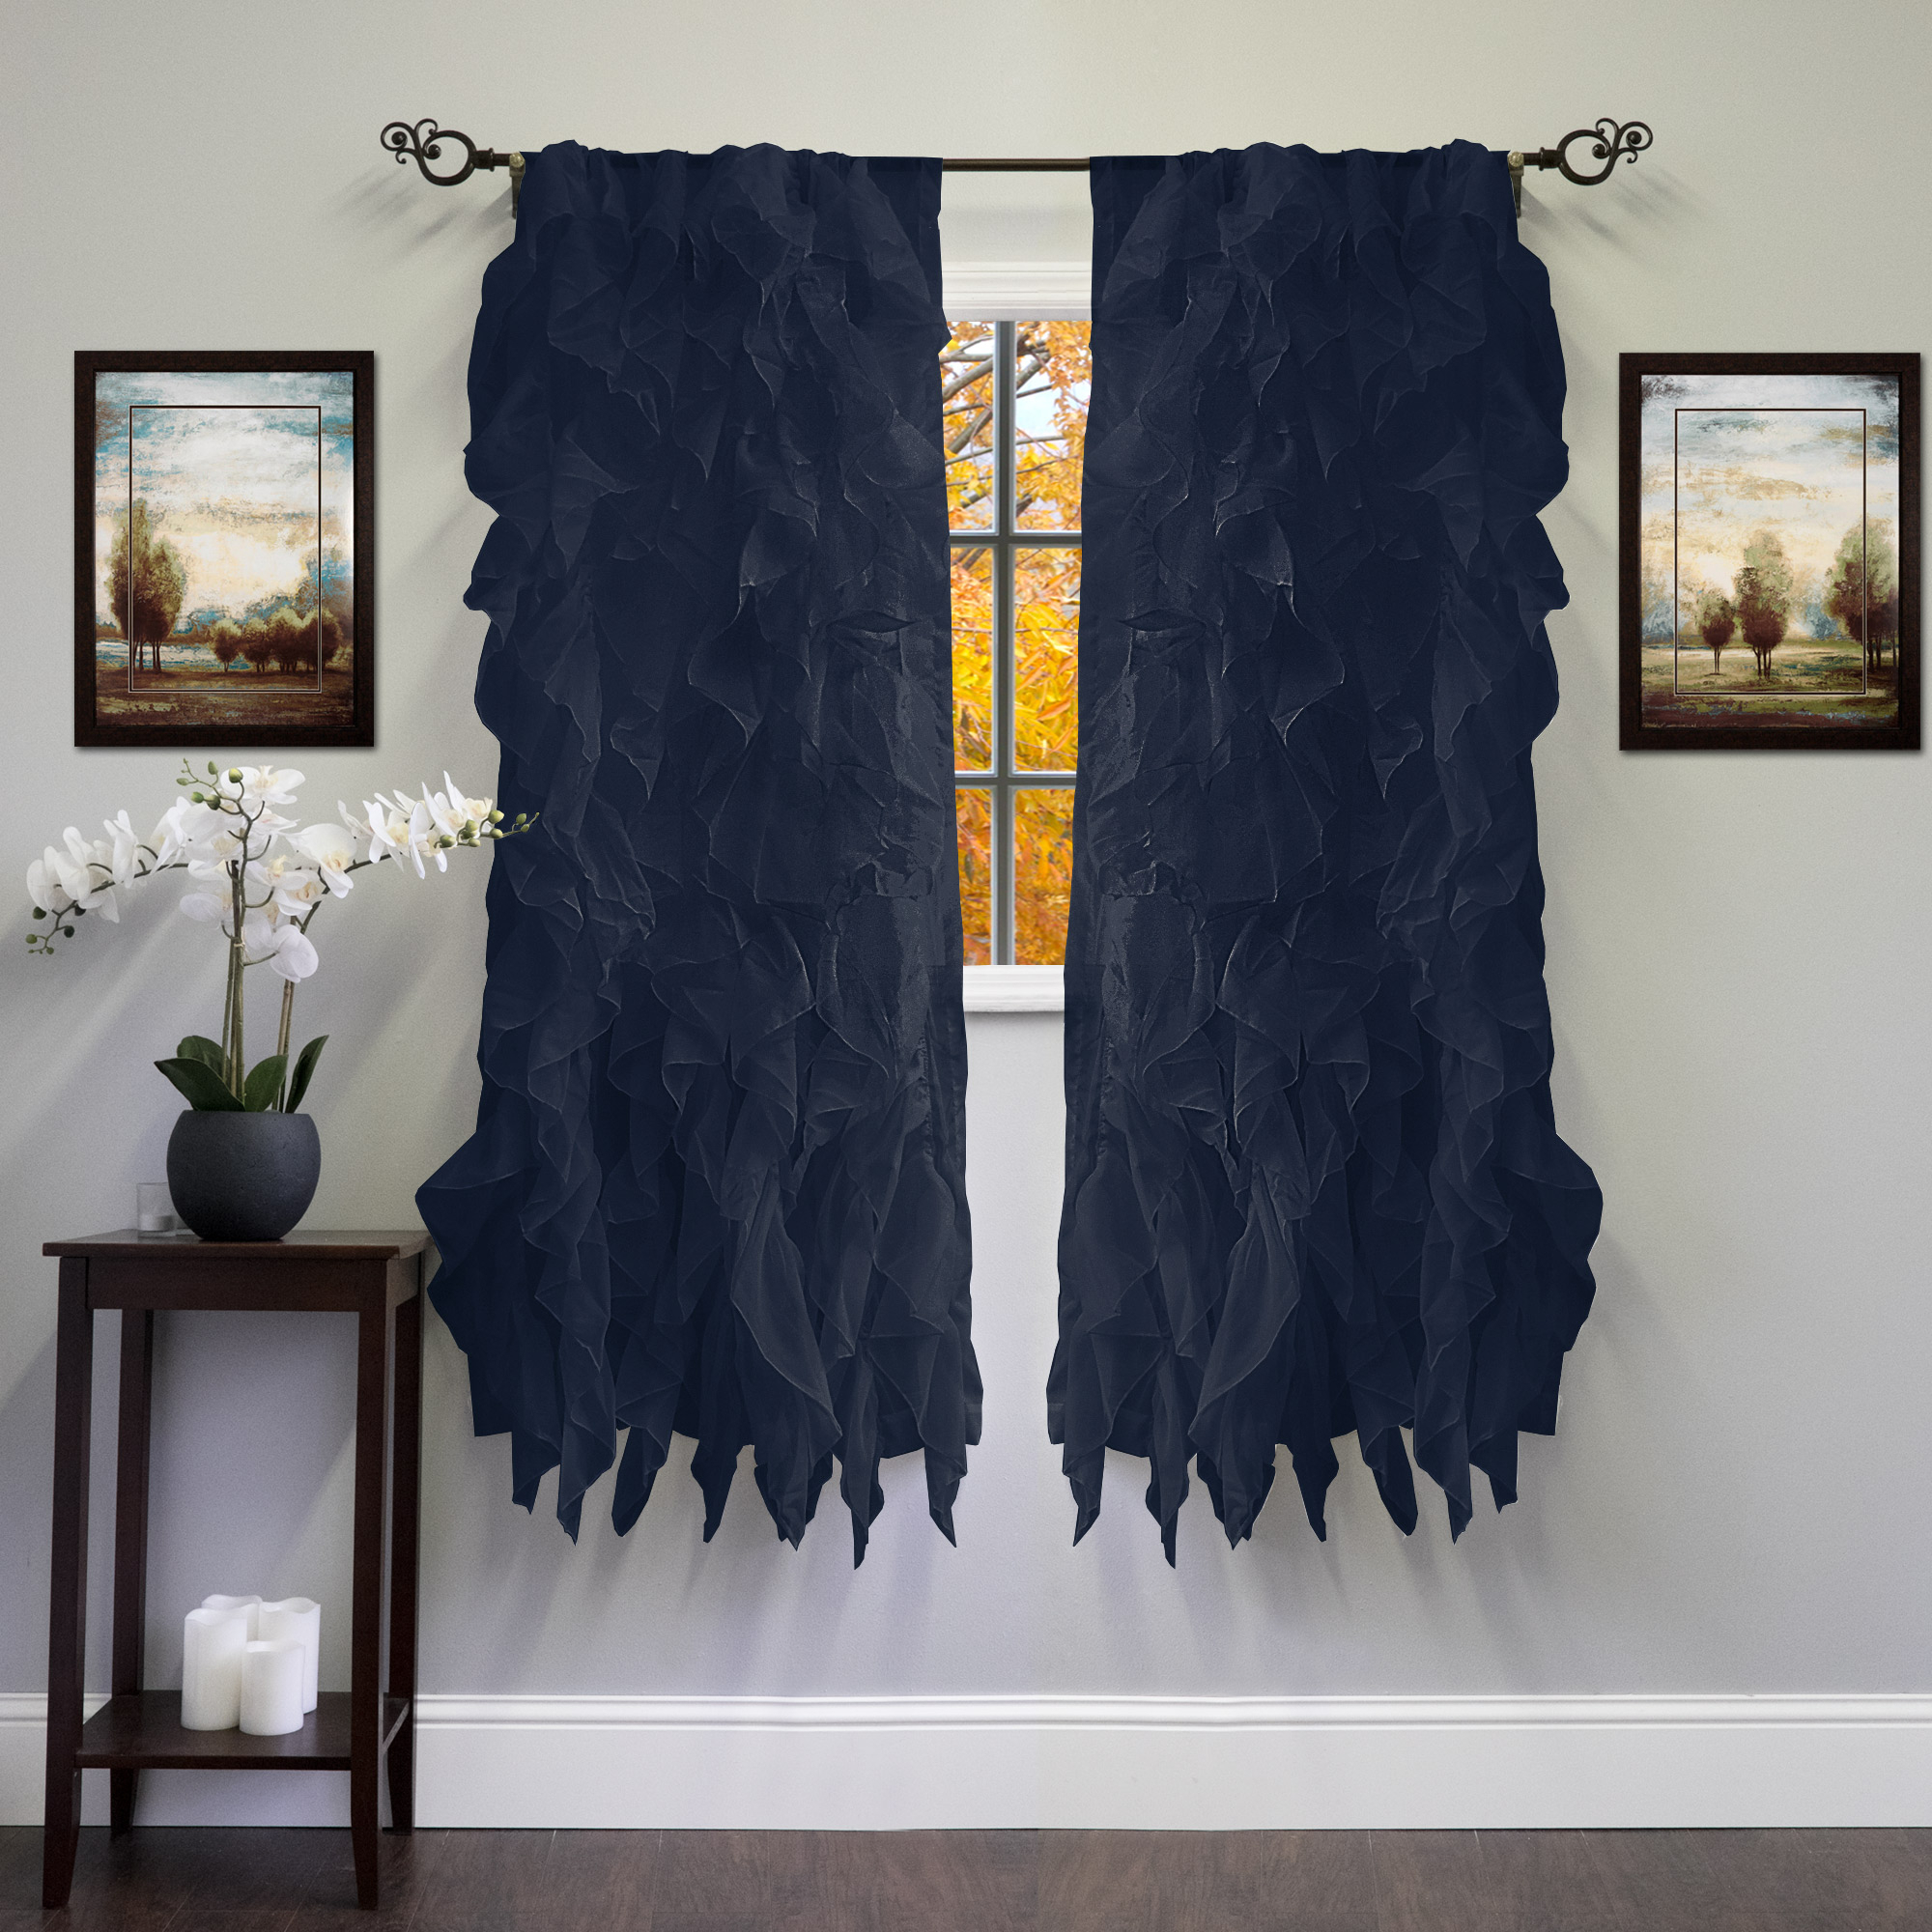 """Chic Sheer Voile Vertical Ruffled Tier Window Curtain Single Panel 50"""" X 84"""" With Regard To Chic Sheer Voile Vertical Ruffled Window Curtain Tiers (View 5 of 20)"""